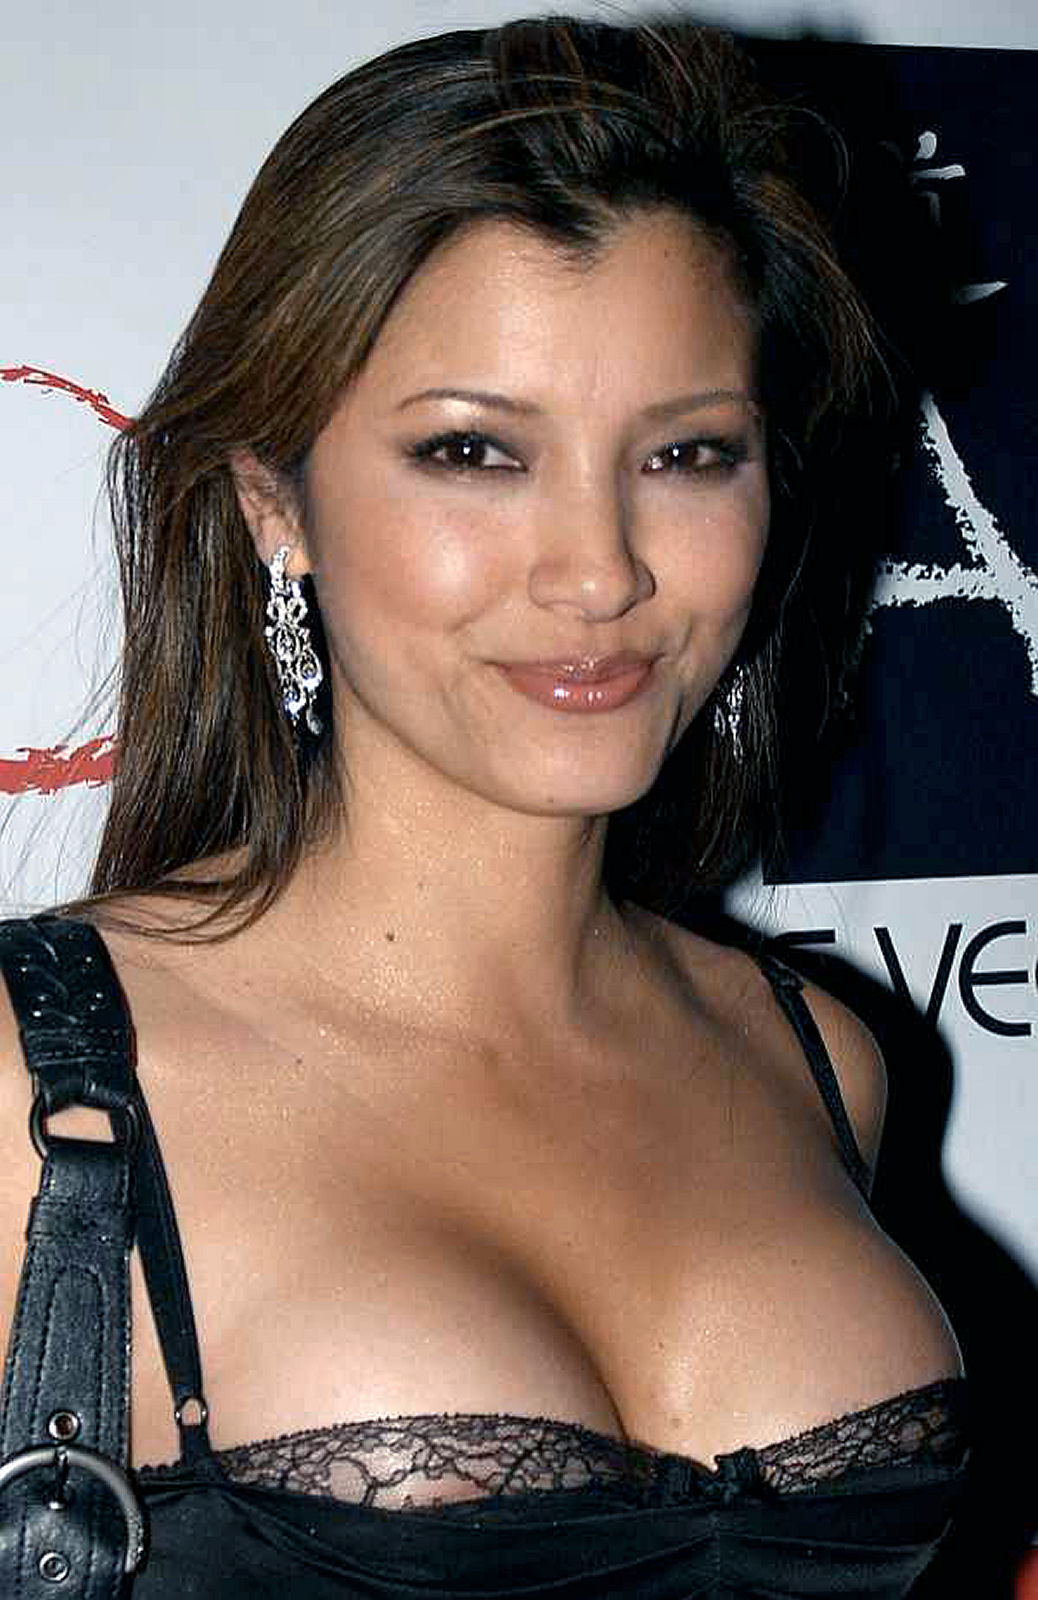 Kelly hu /nude pornhub picture 49